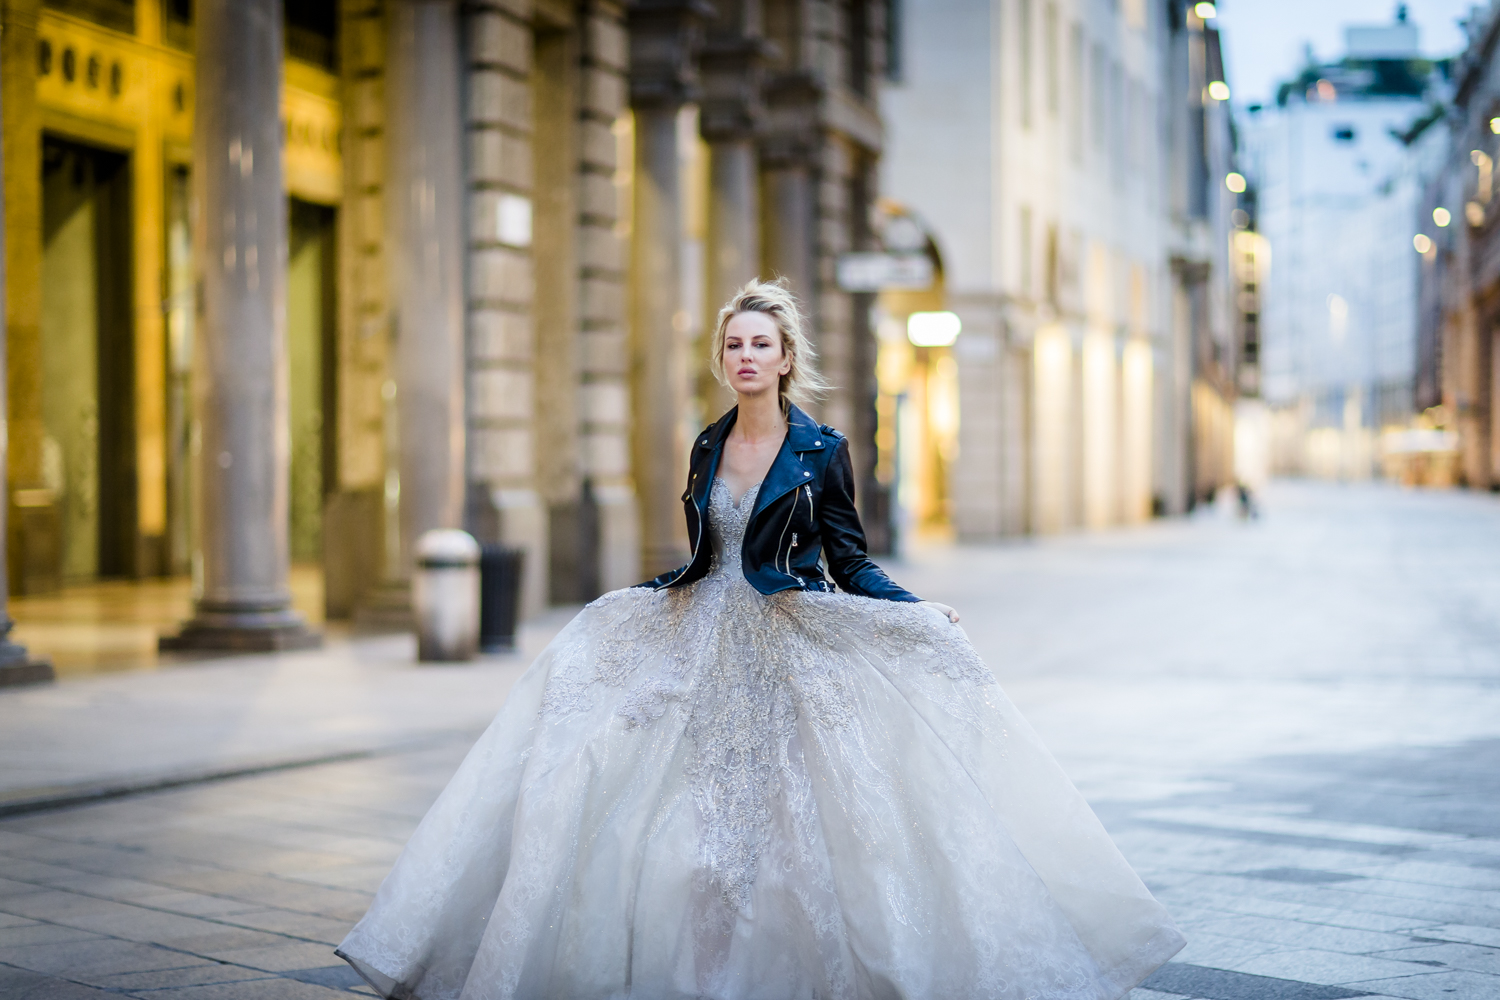 Empress Dress, Milano, Italy